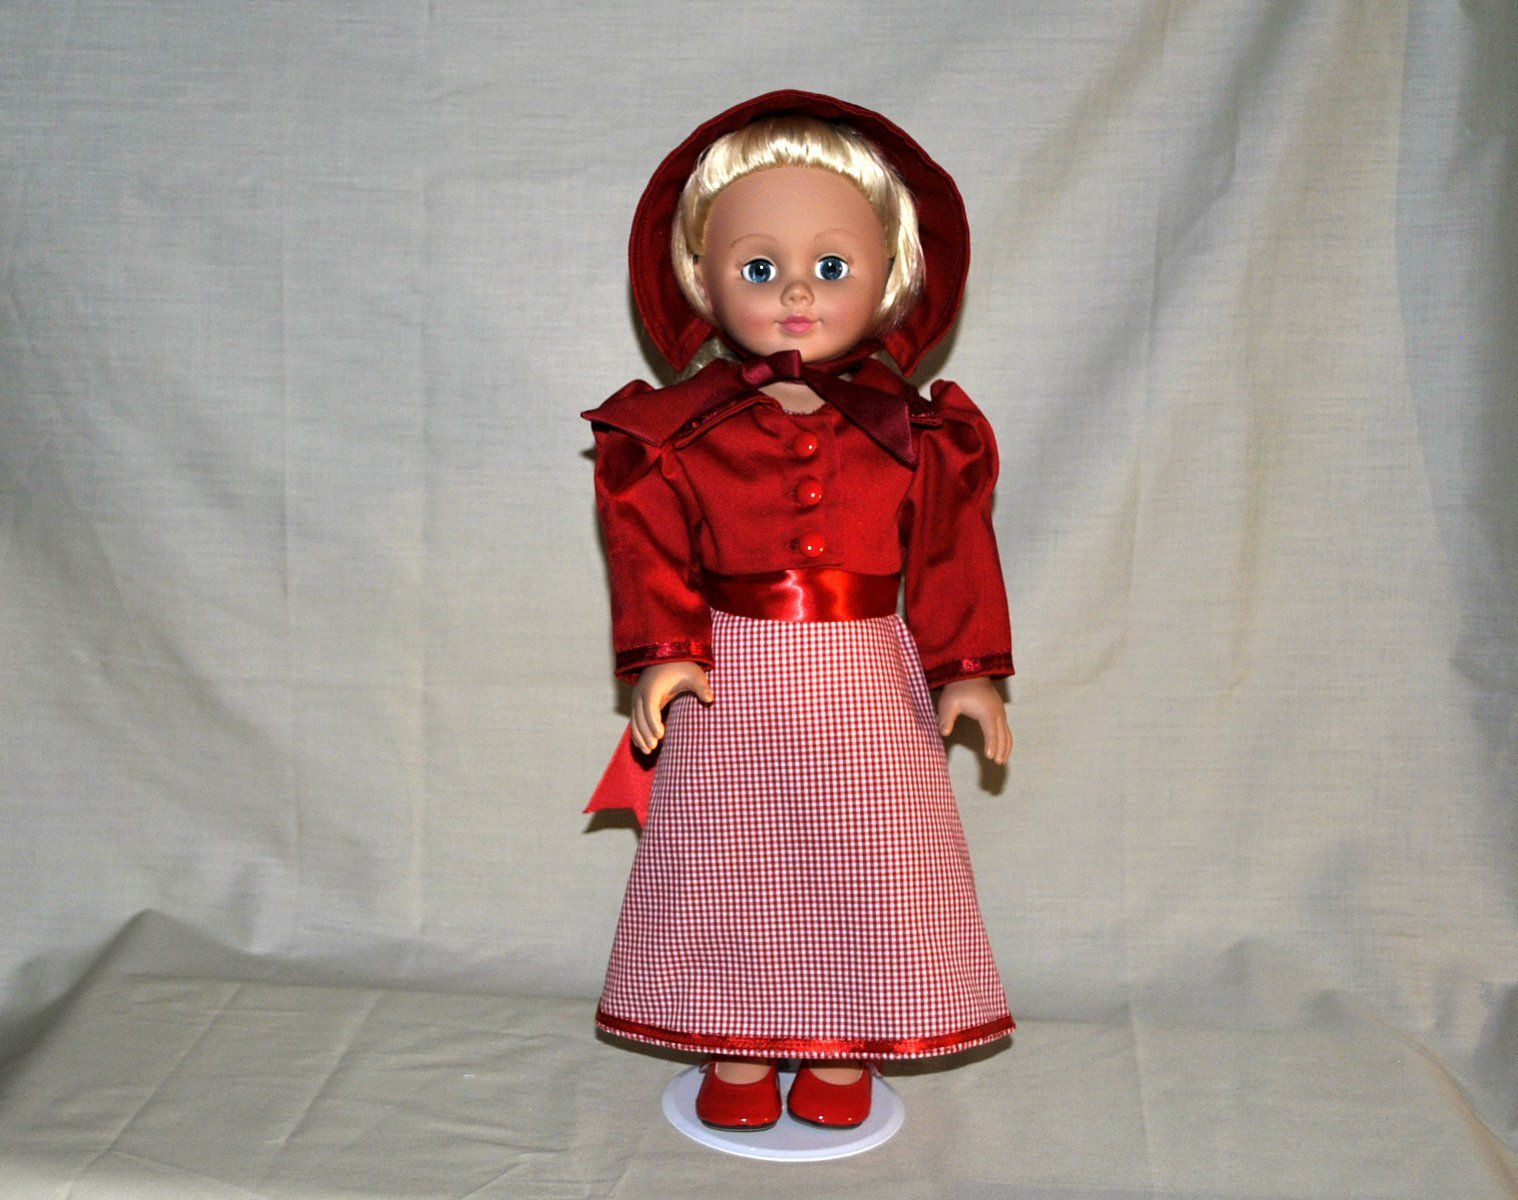 Victorian Regency Historical Red 18 inch Doll Dress and Jacket - Red Shoes, Fits American Girl, Madame Alexander #historicaldollclothes